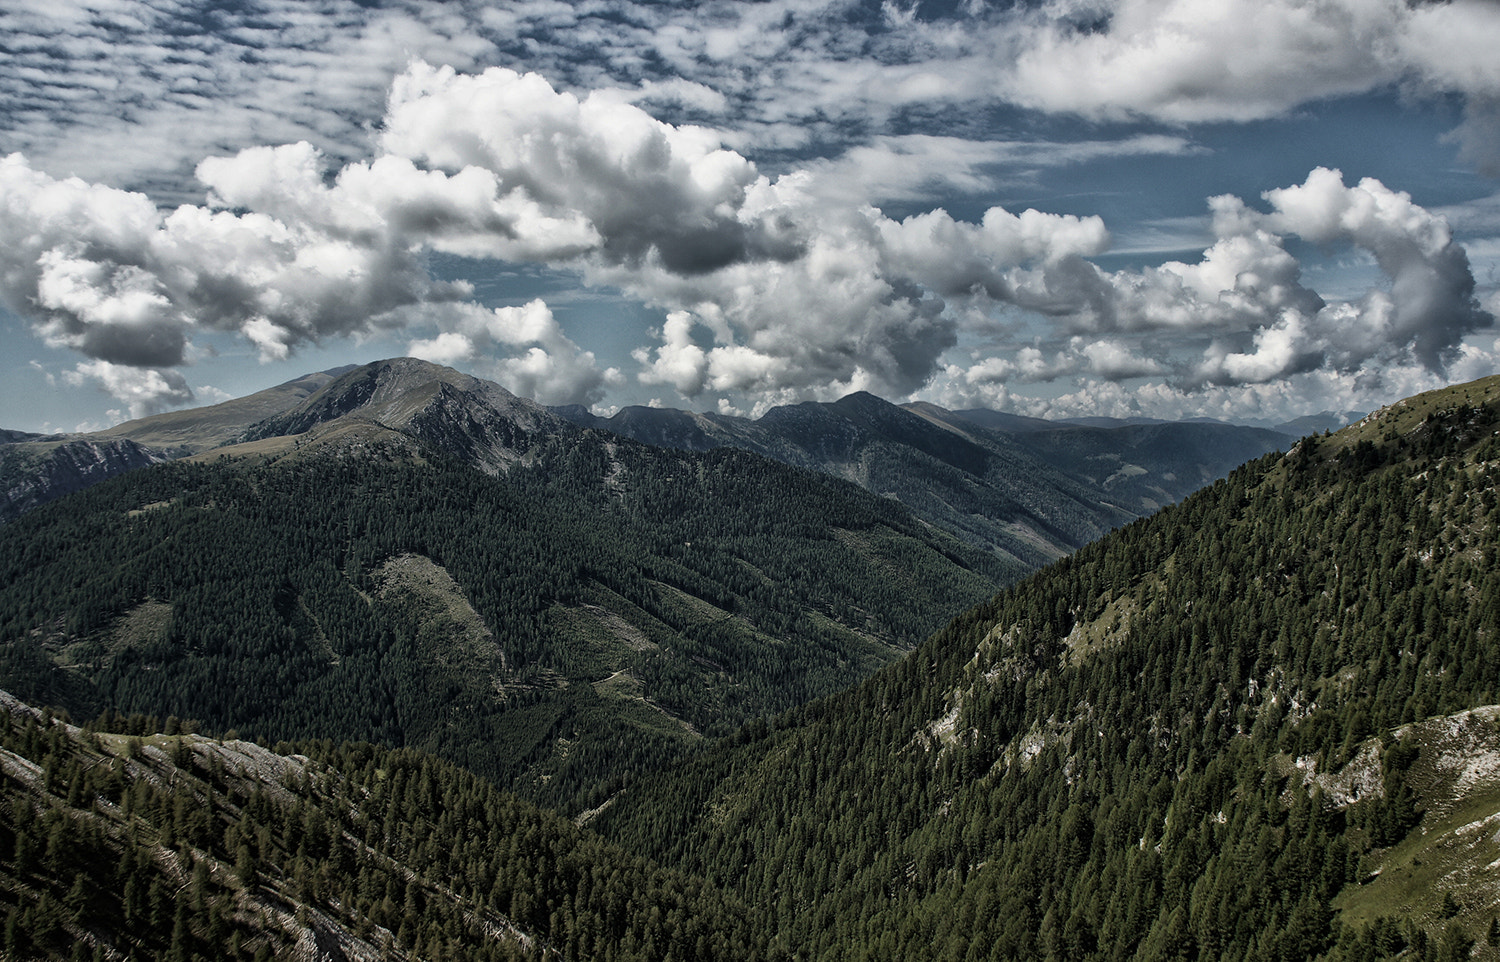 Photograph valleys of the Alps by Andy 58 on 500px